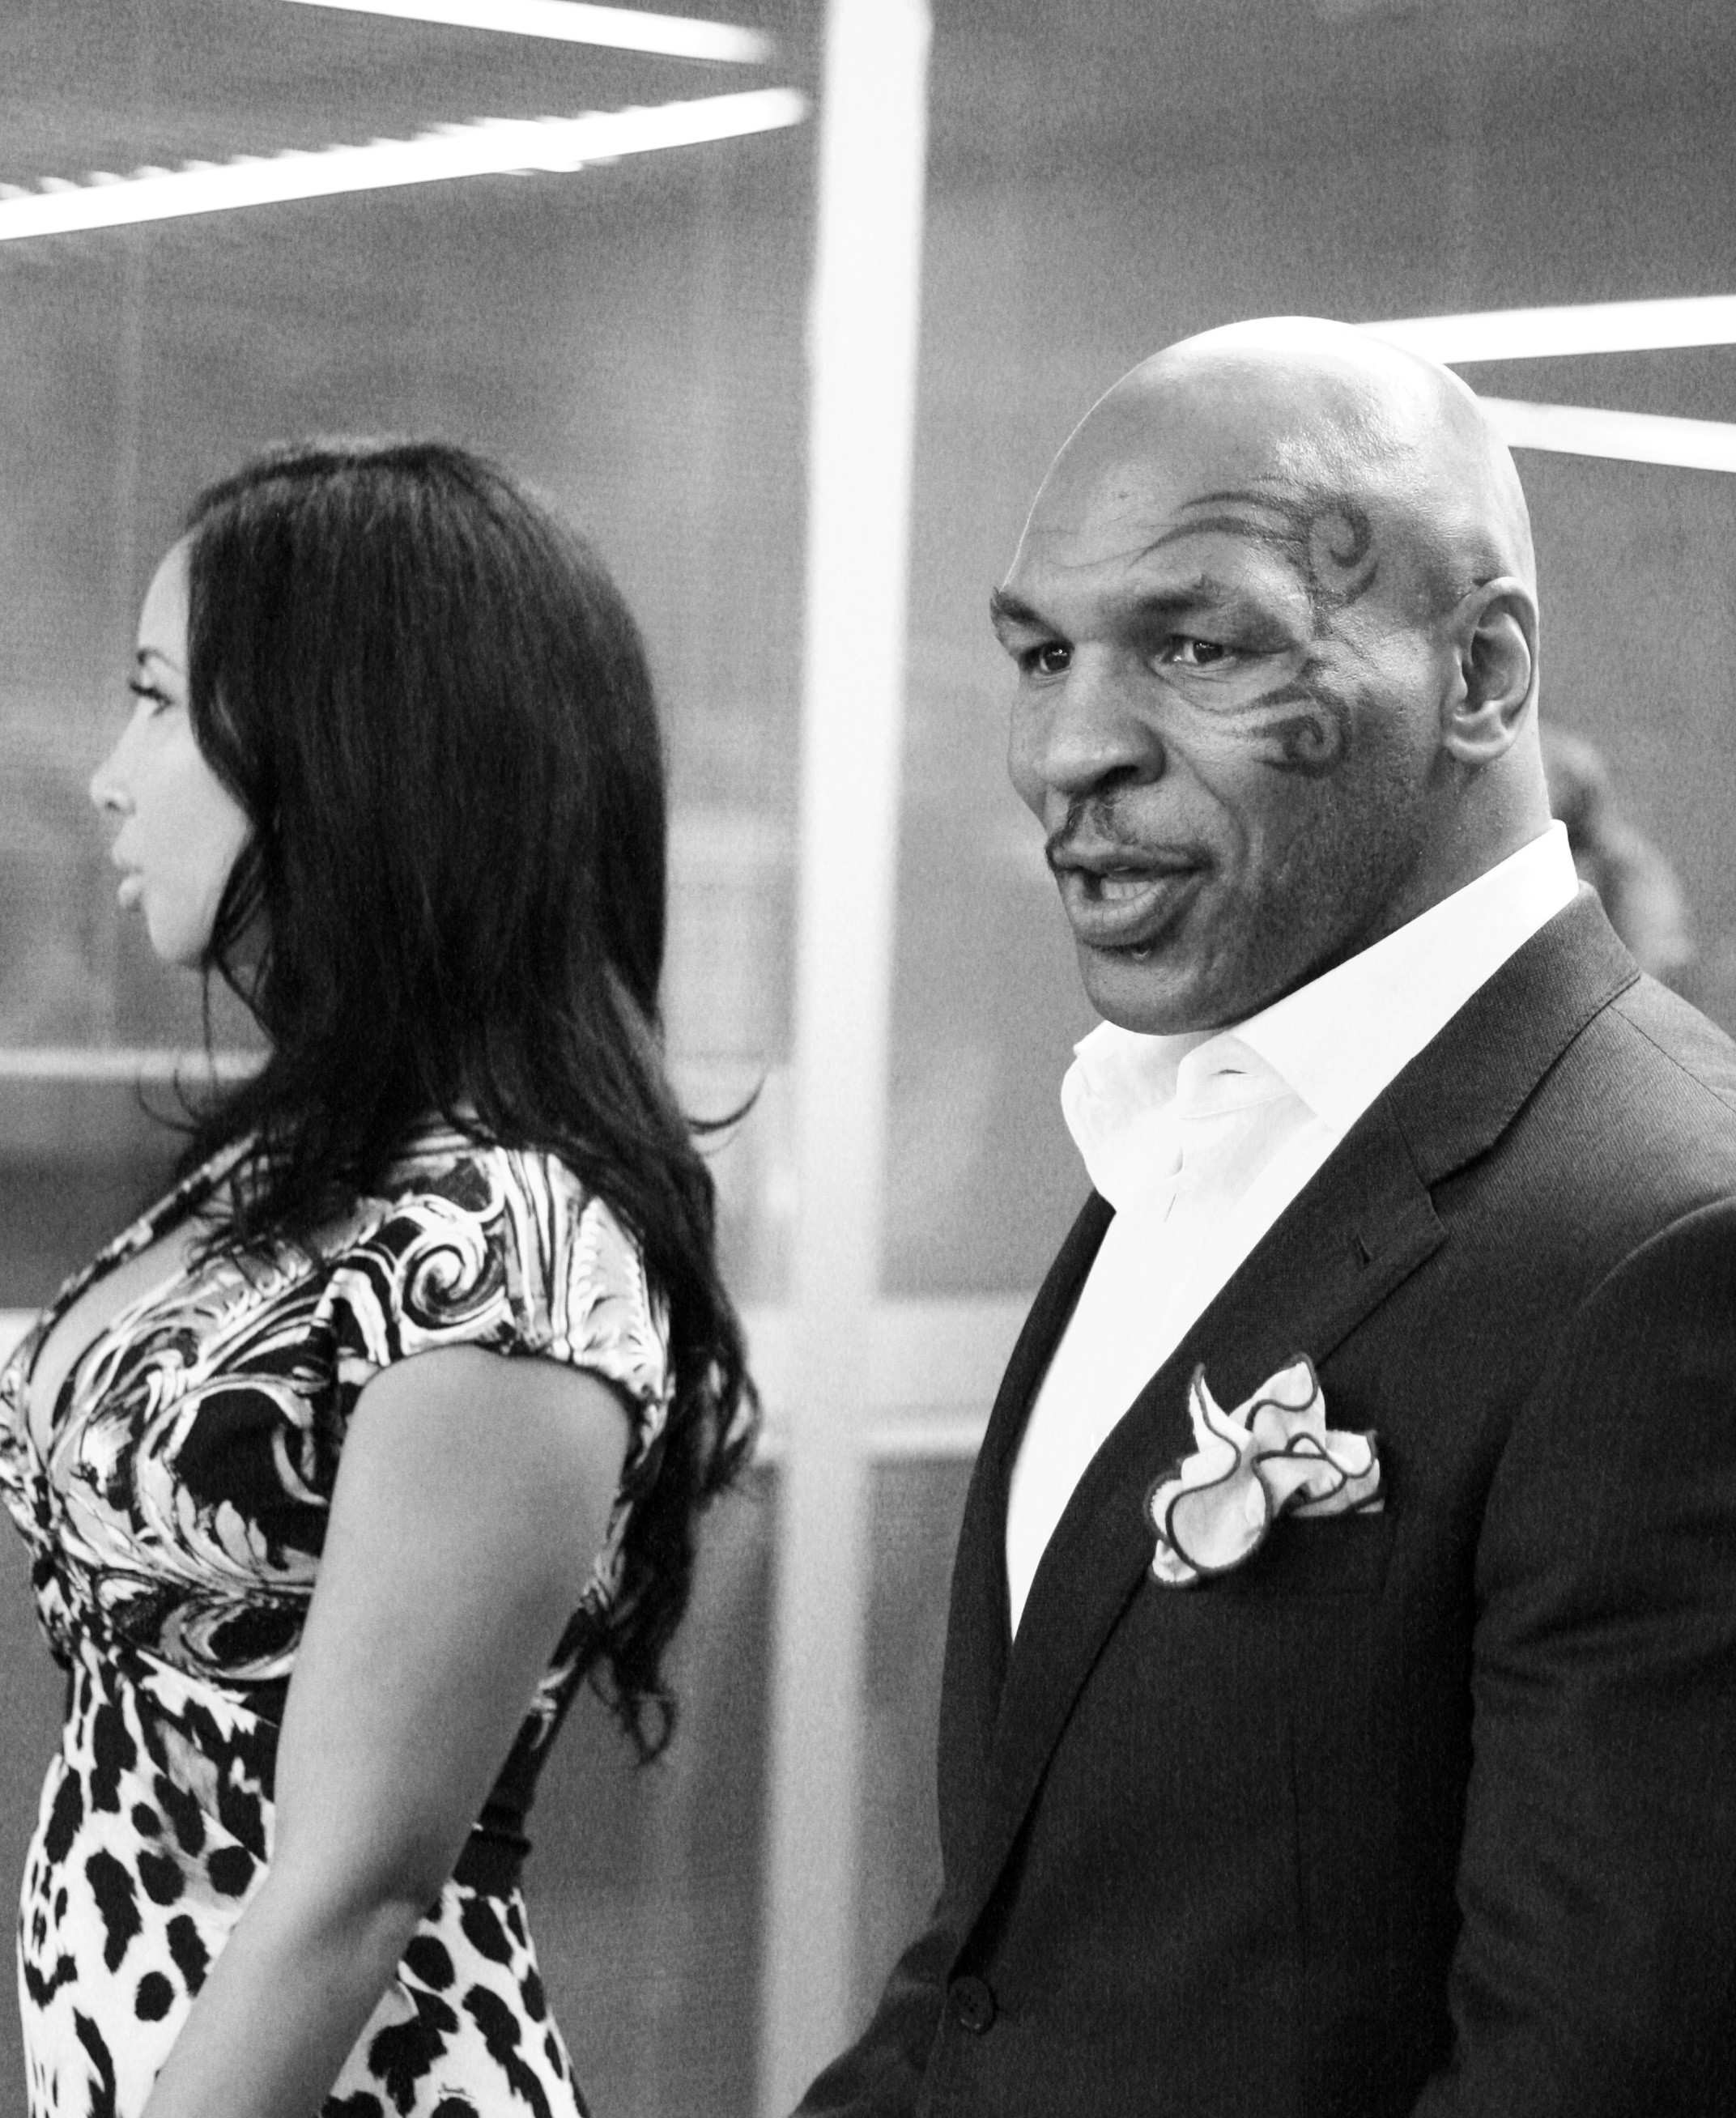 Mike Tyson with his wife Lakiha Spicer.